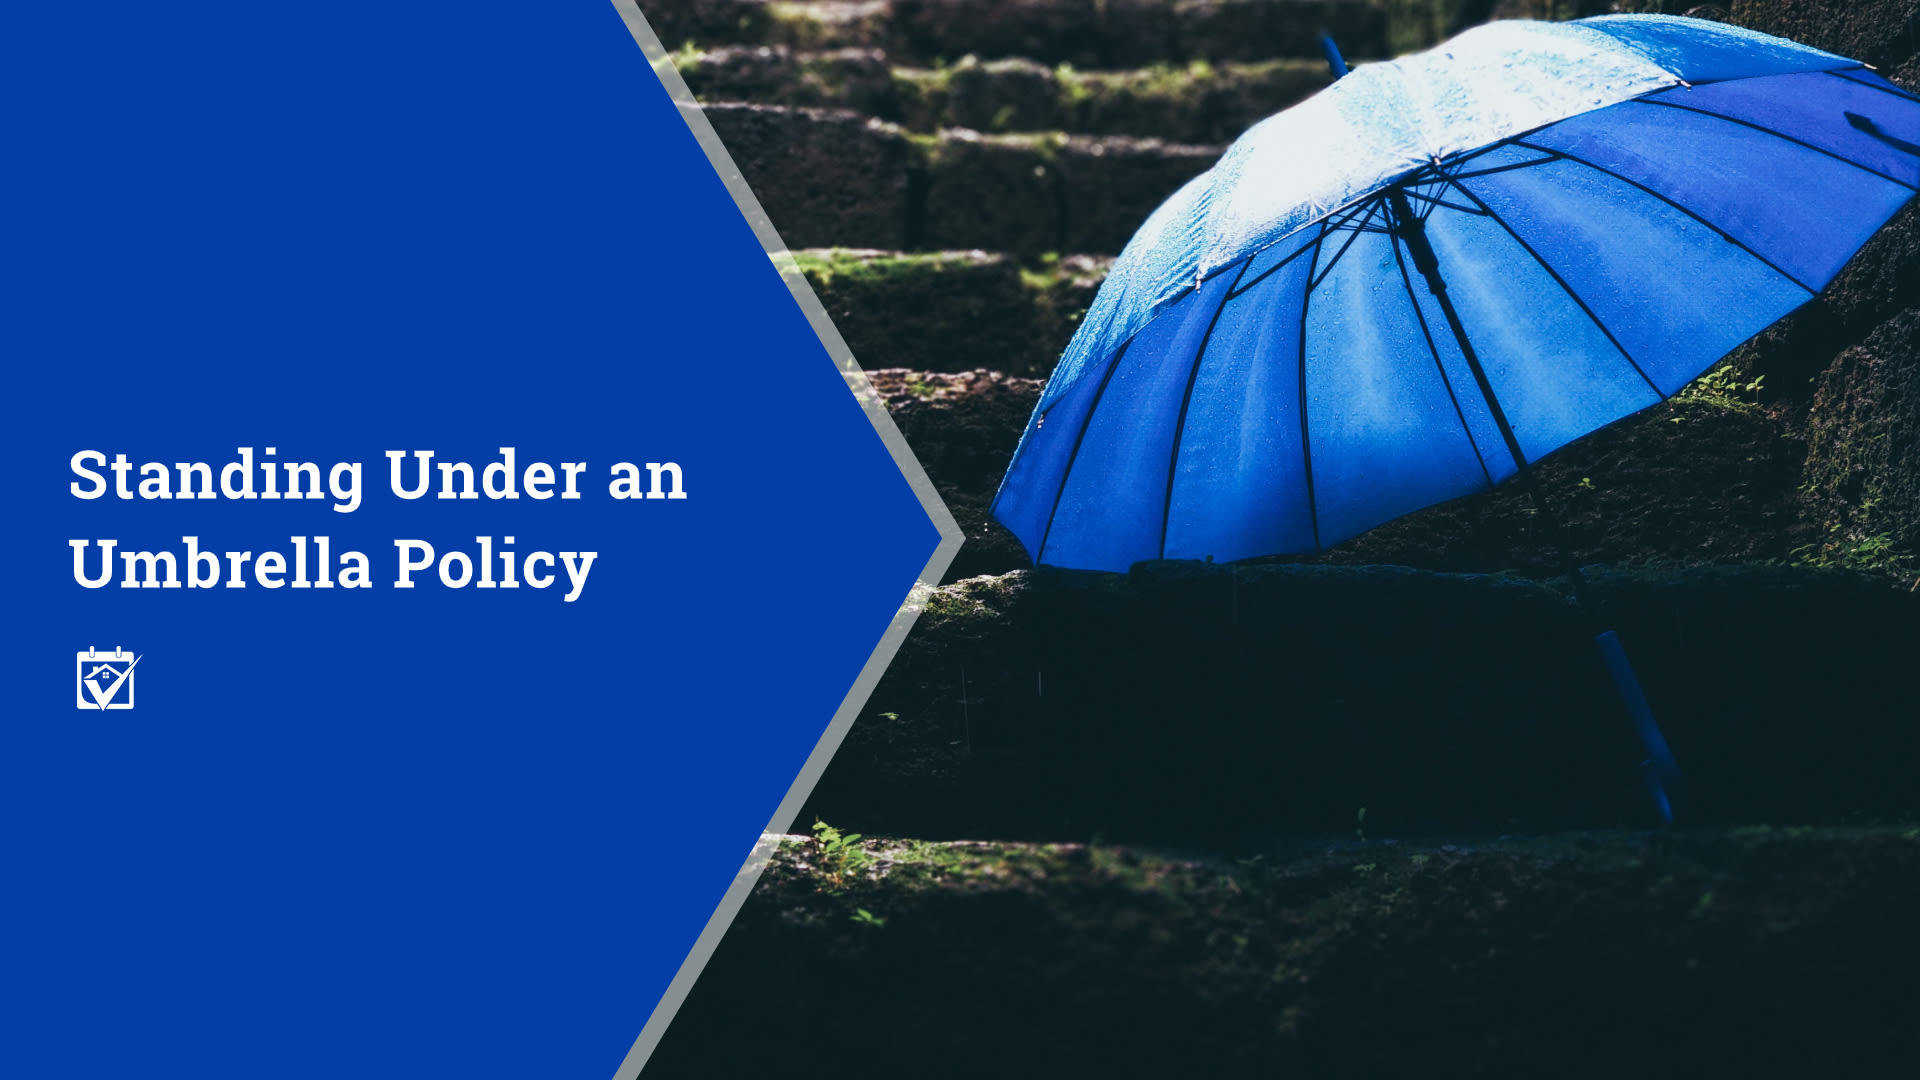 Standing Under an Umbrella Policy